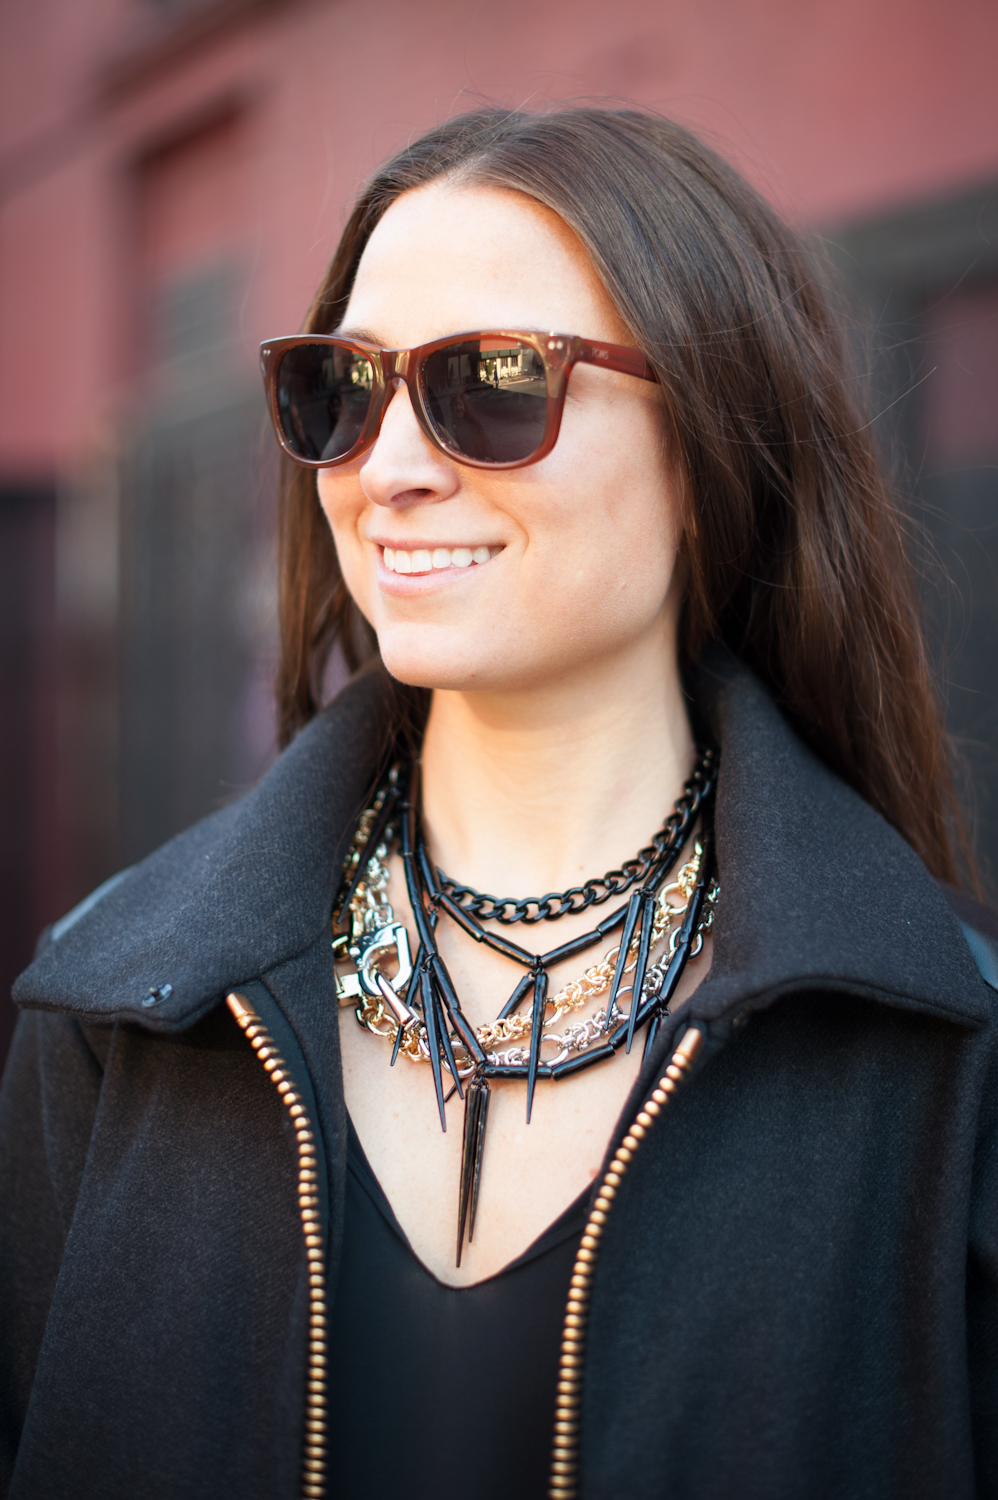 Nicole Fasolino, Art Director and Stylist